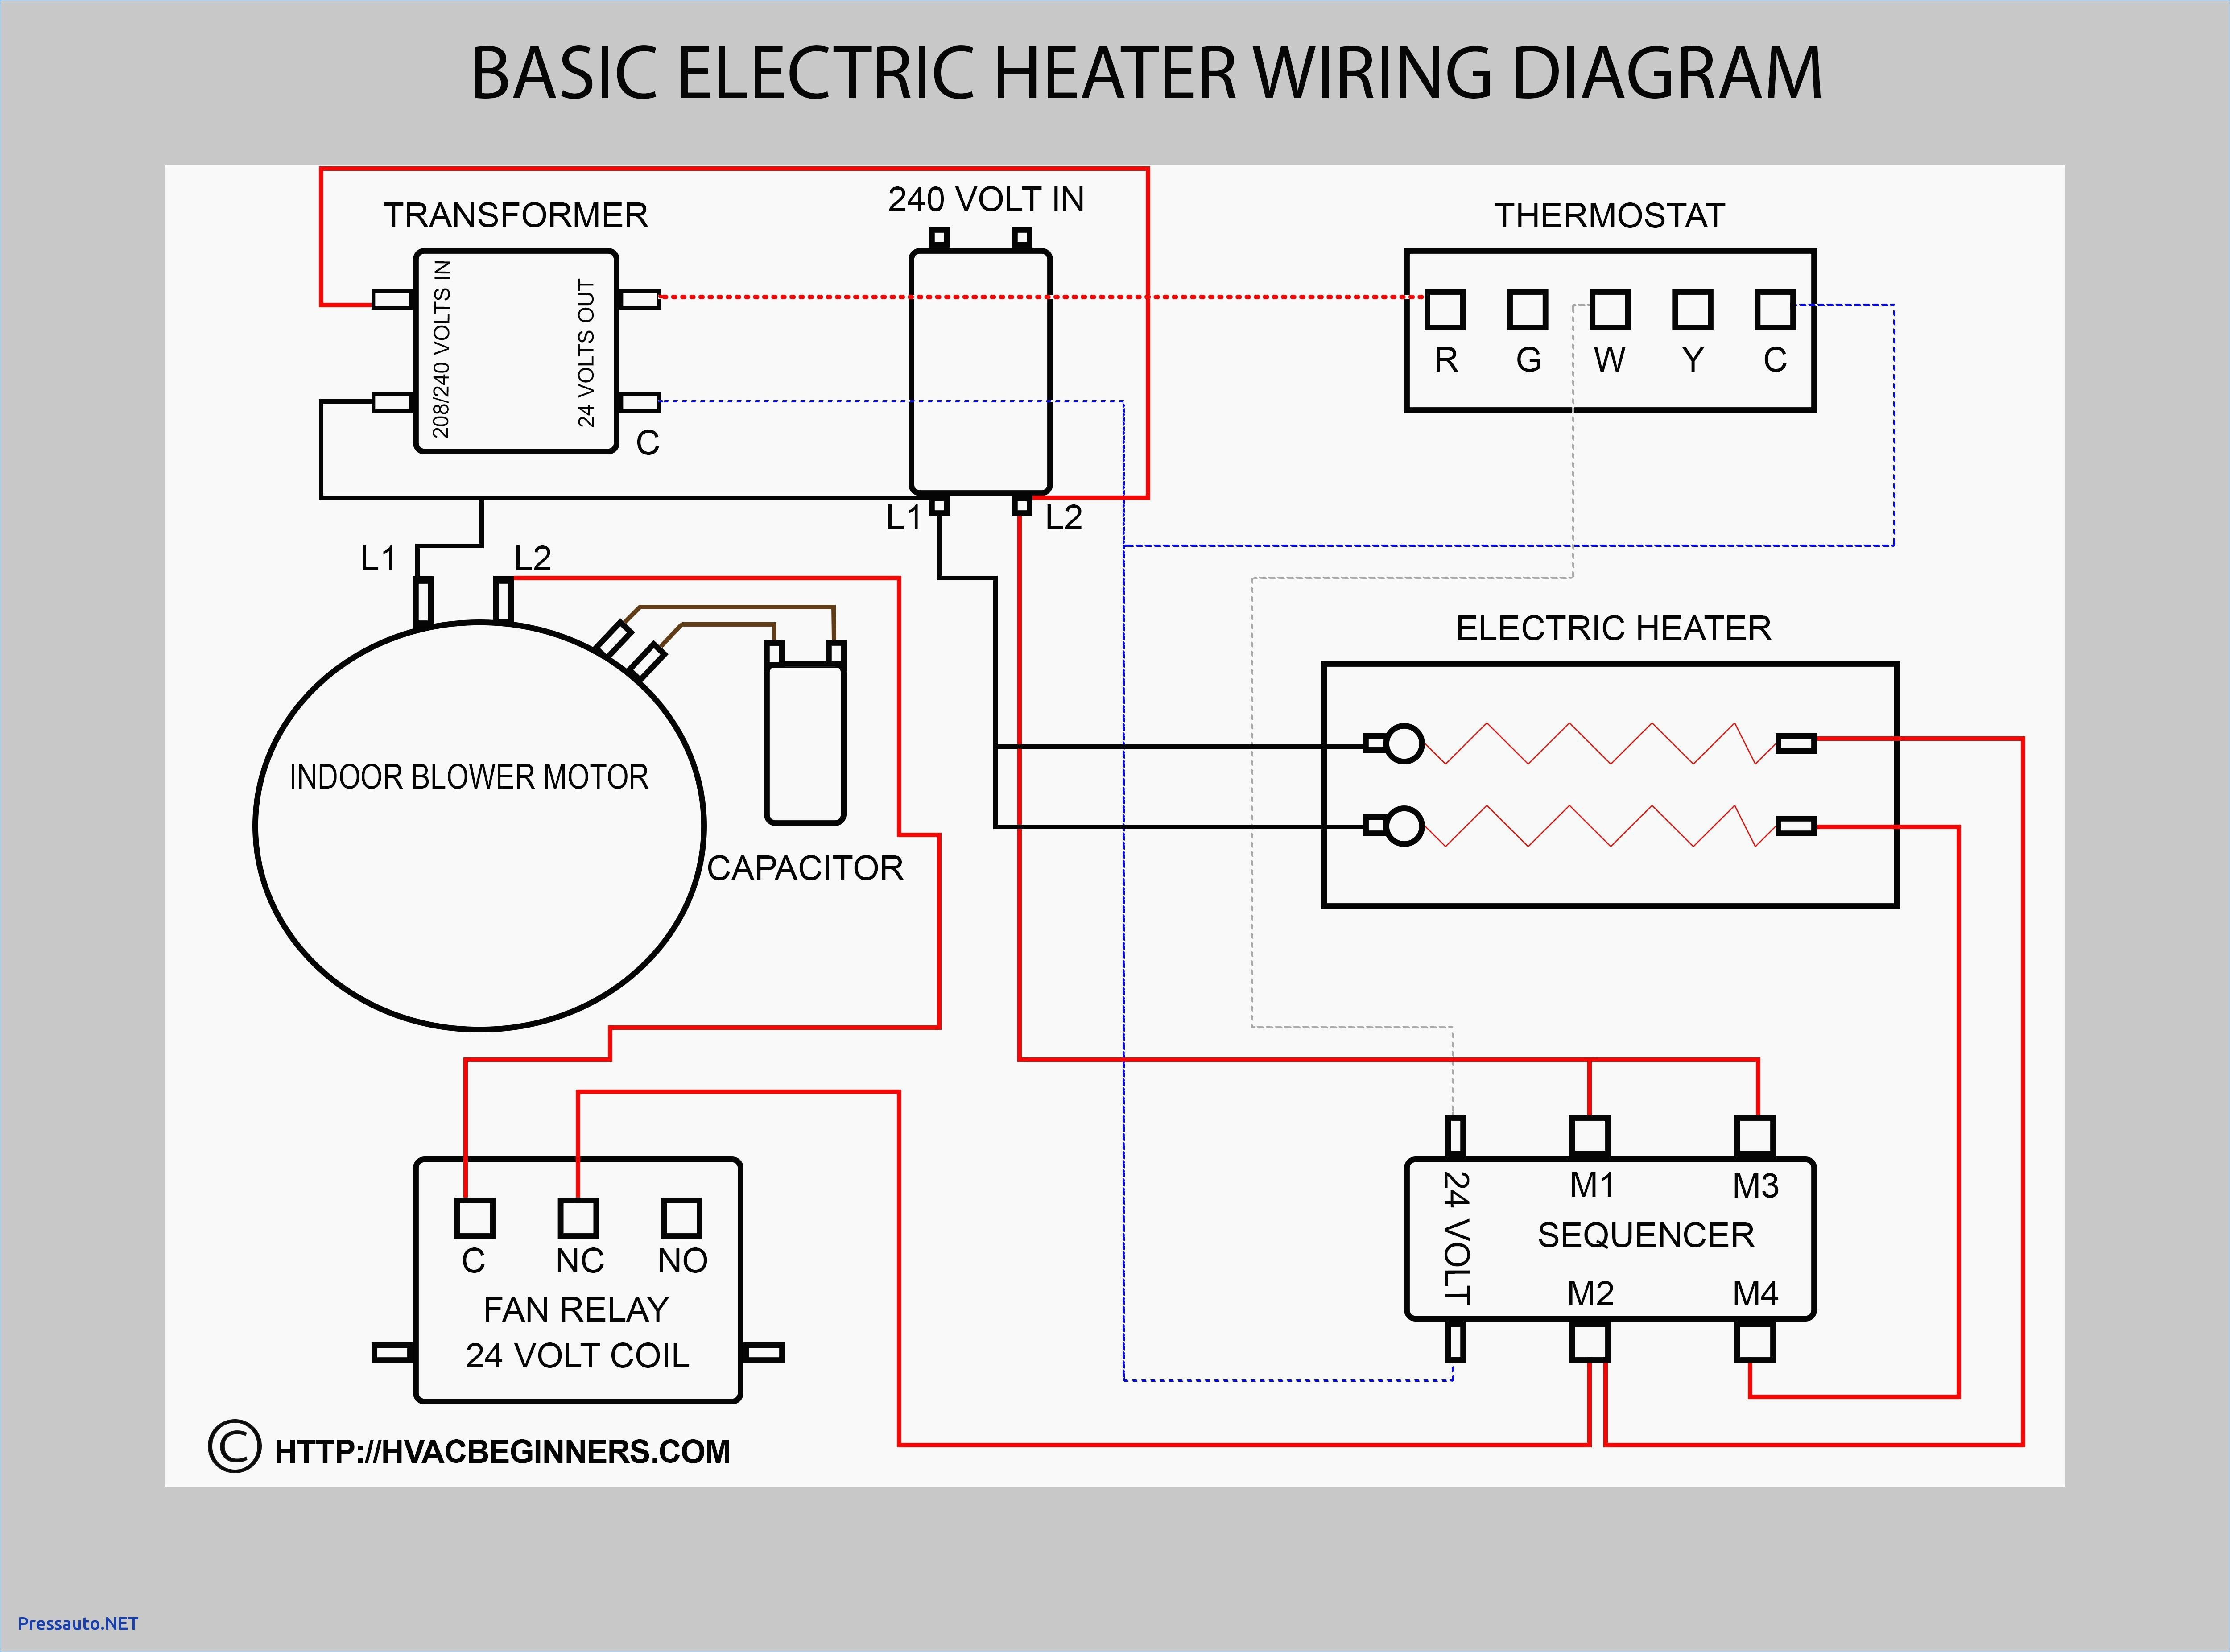 electric heat thermostat wiring diagram Collection-house thermostat wiring diagram Collection Wiring Diagrams For Central Heating Save Wiring Diagram For Heating DOWNLOAD Wiring Diagram 5-m